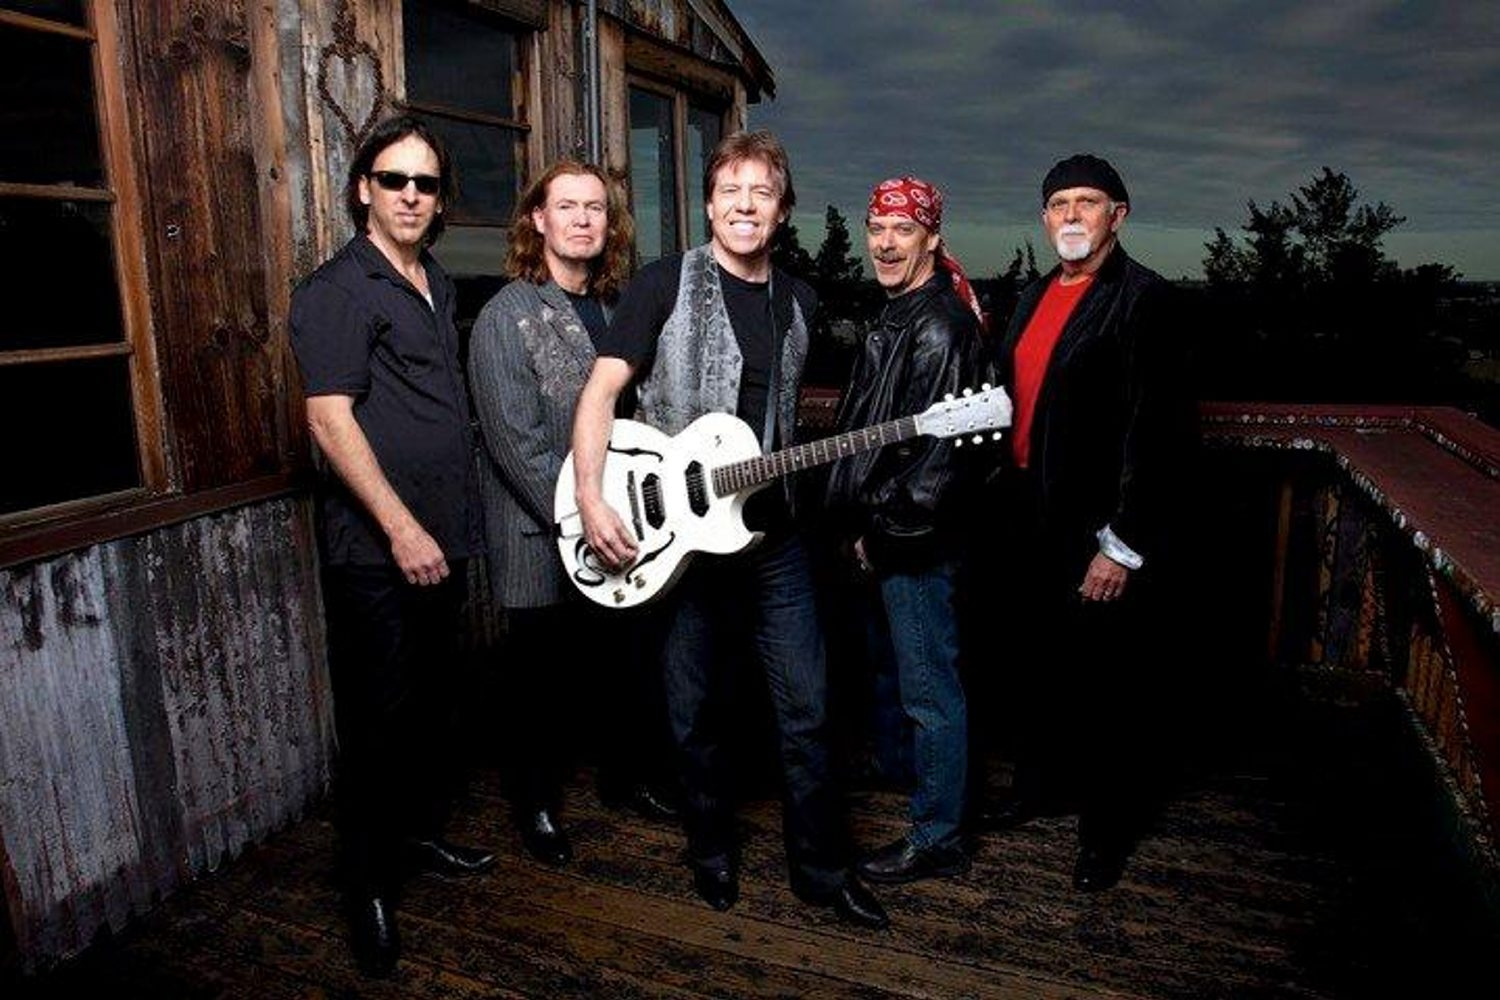 George Thorogood & the Destroyers play Canalside at 7 p.m. Friday.